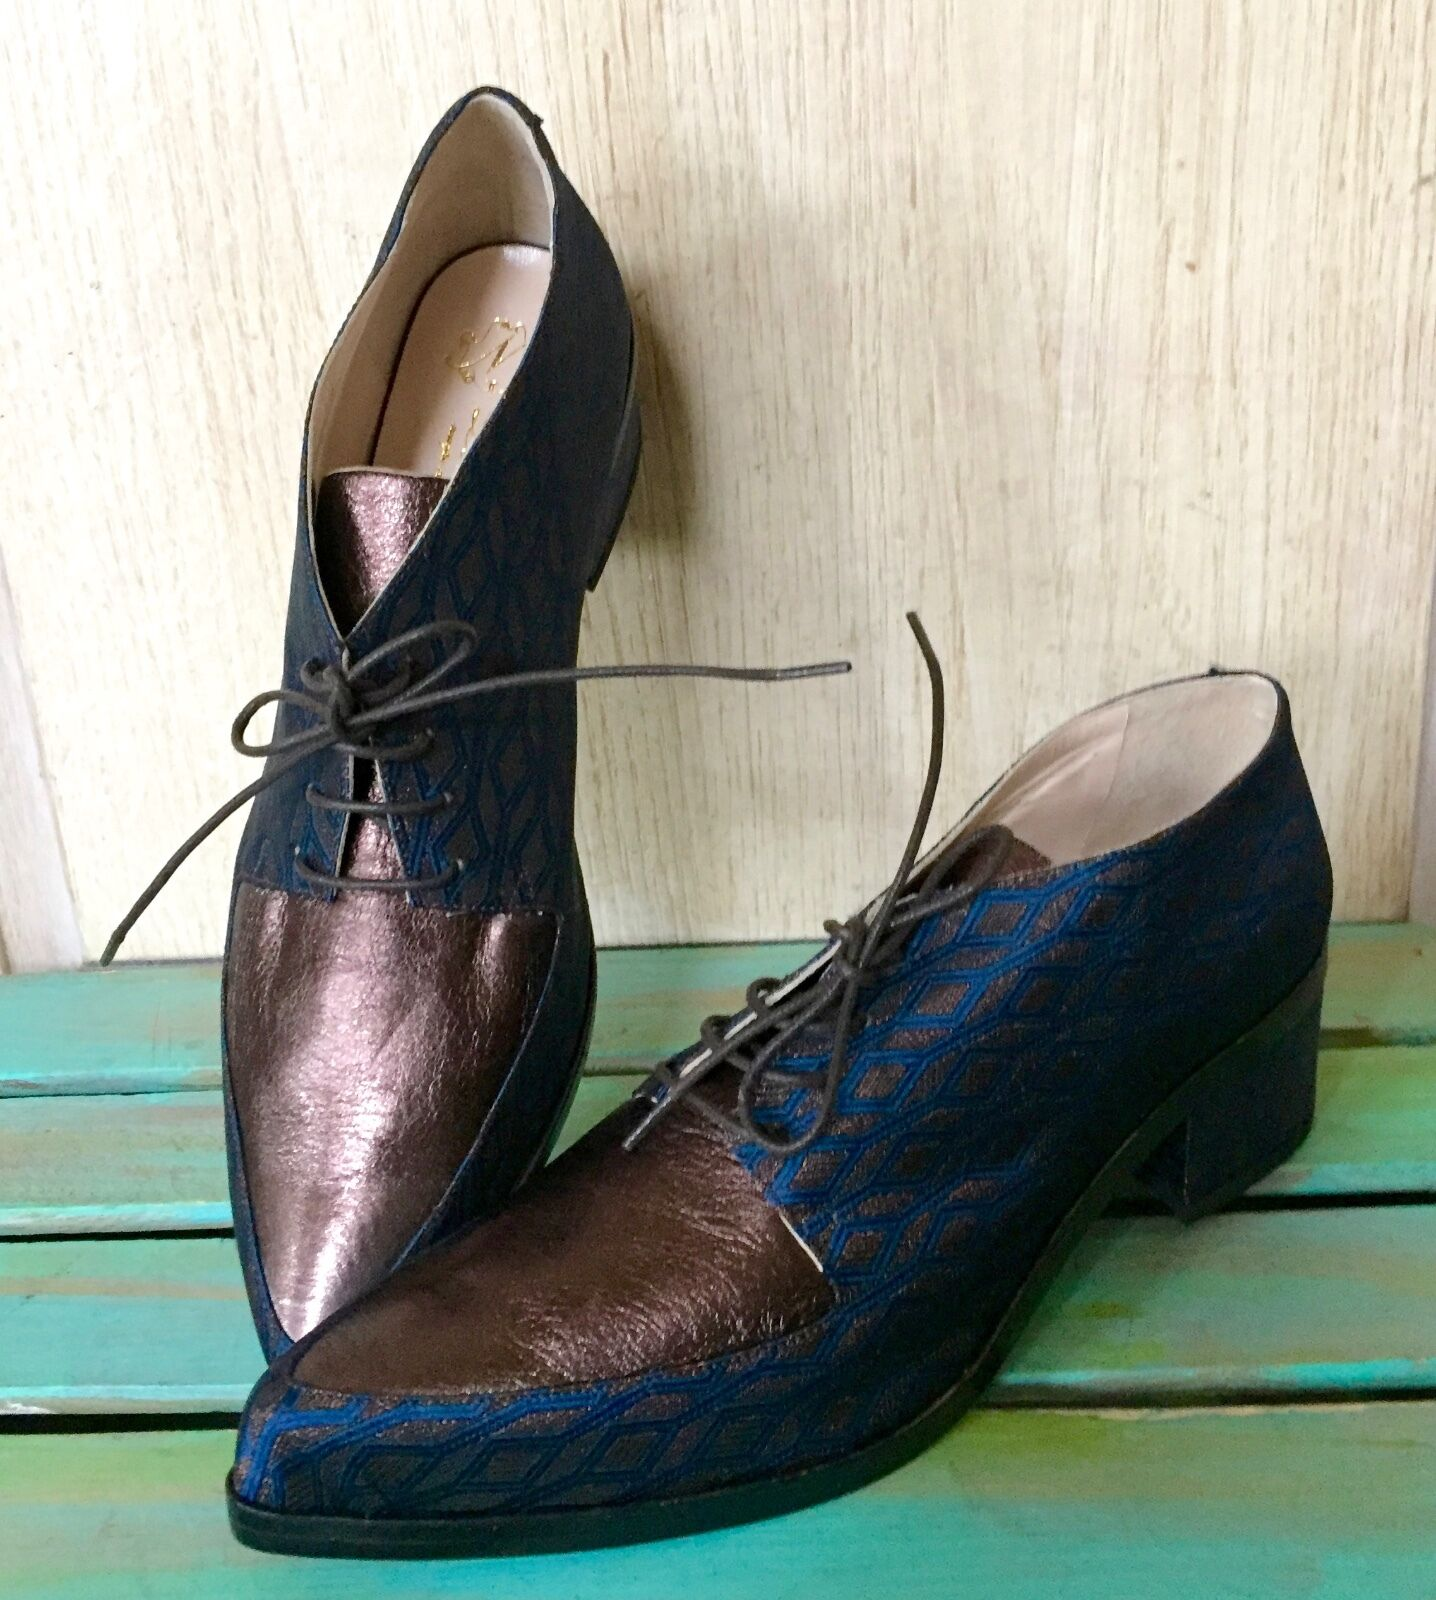 NIB Lenora bluee Bronze Fabric Leather Oxford Bought at Anthropologie shoes 38